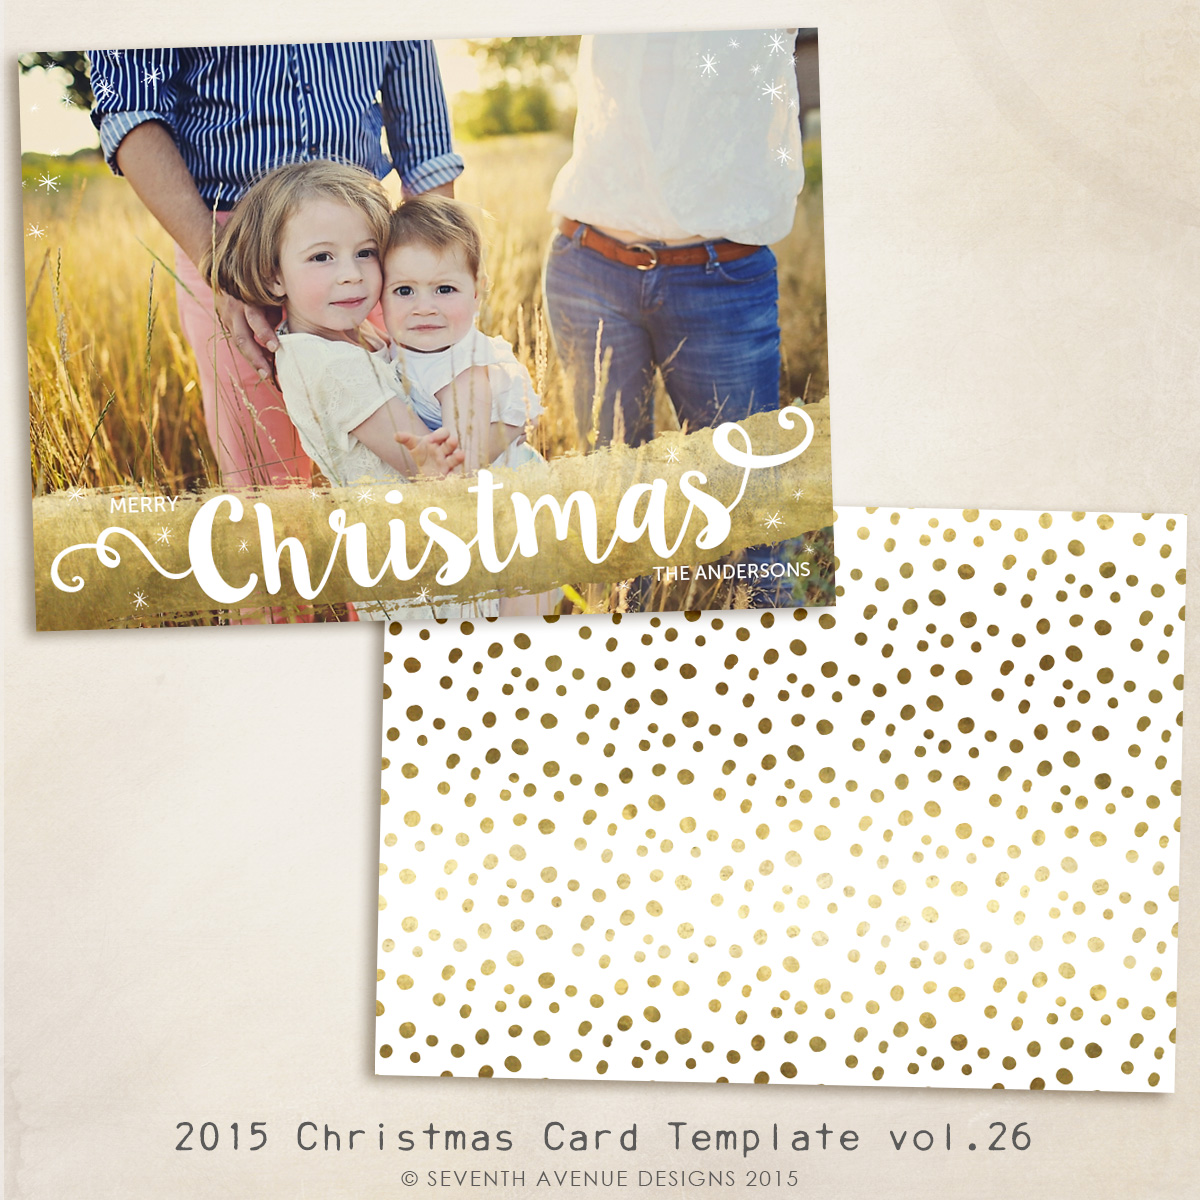 2015 Christmas Card Templates vol.26 -- 7x5 inch card template